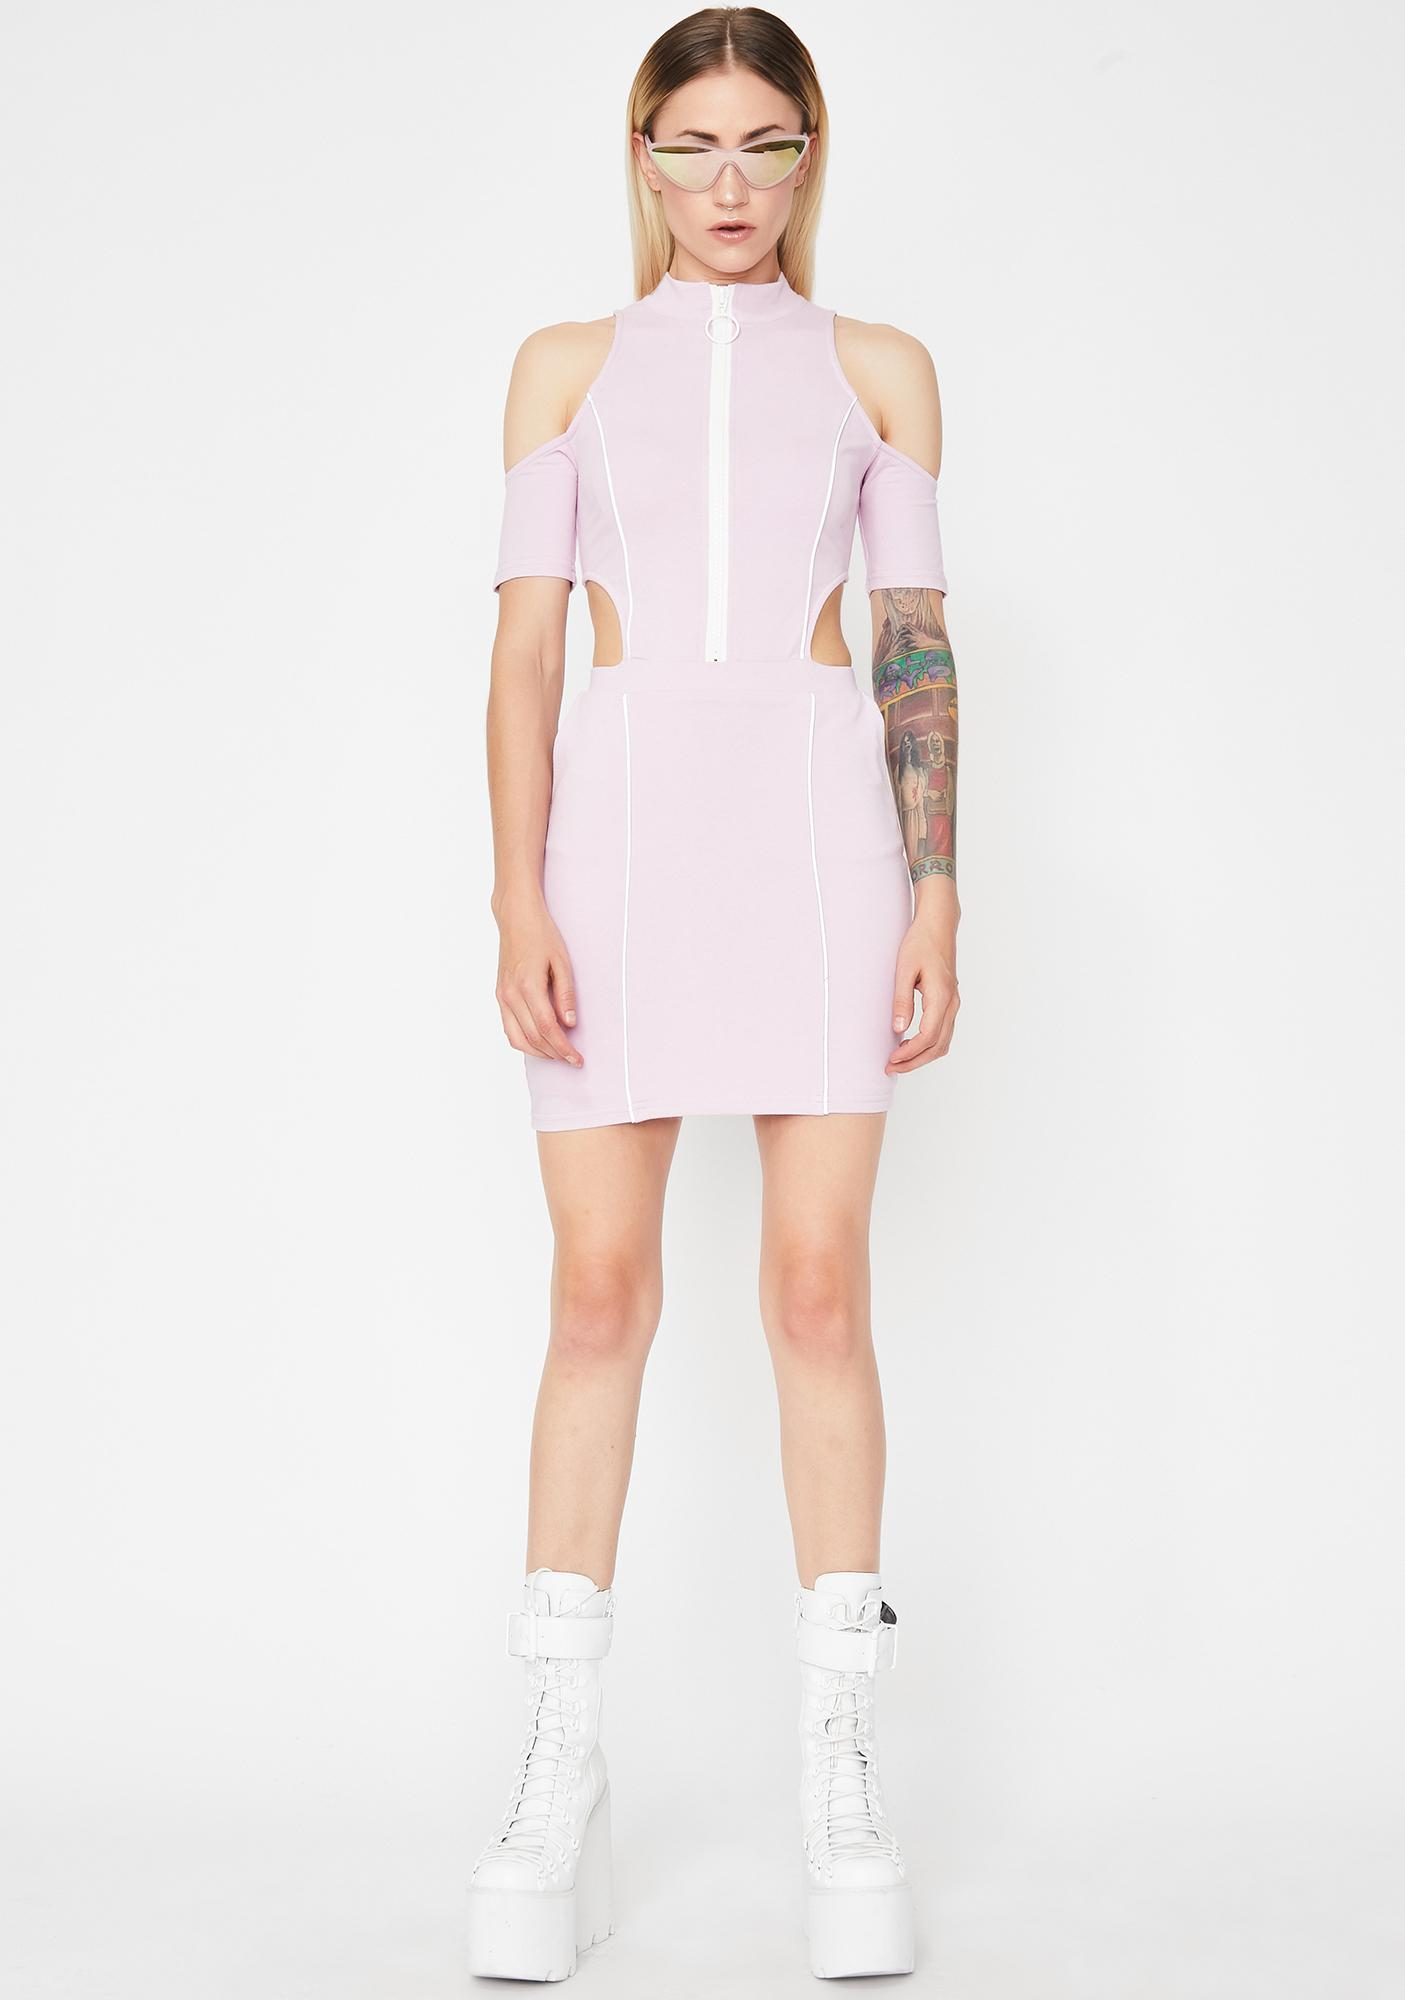 Shining Babe Reflective Dress